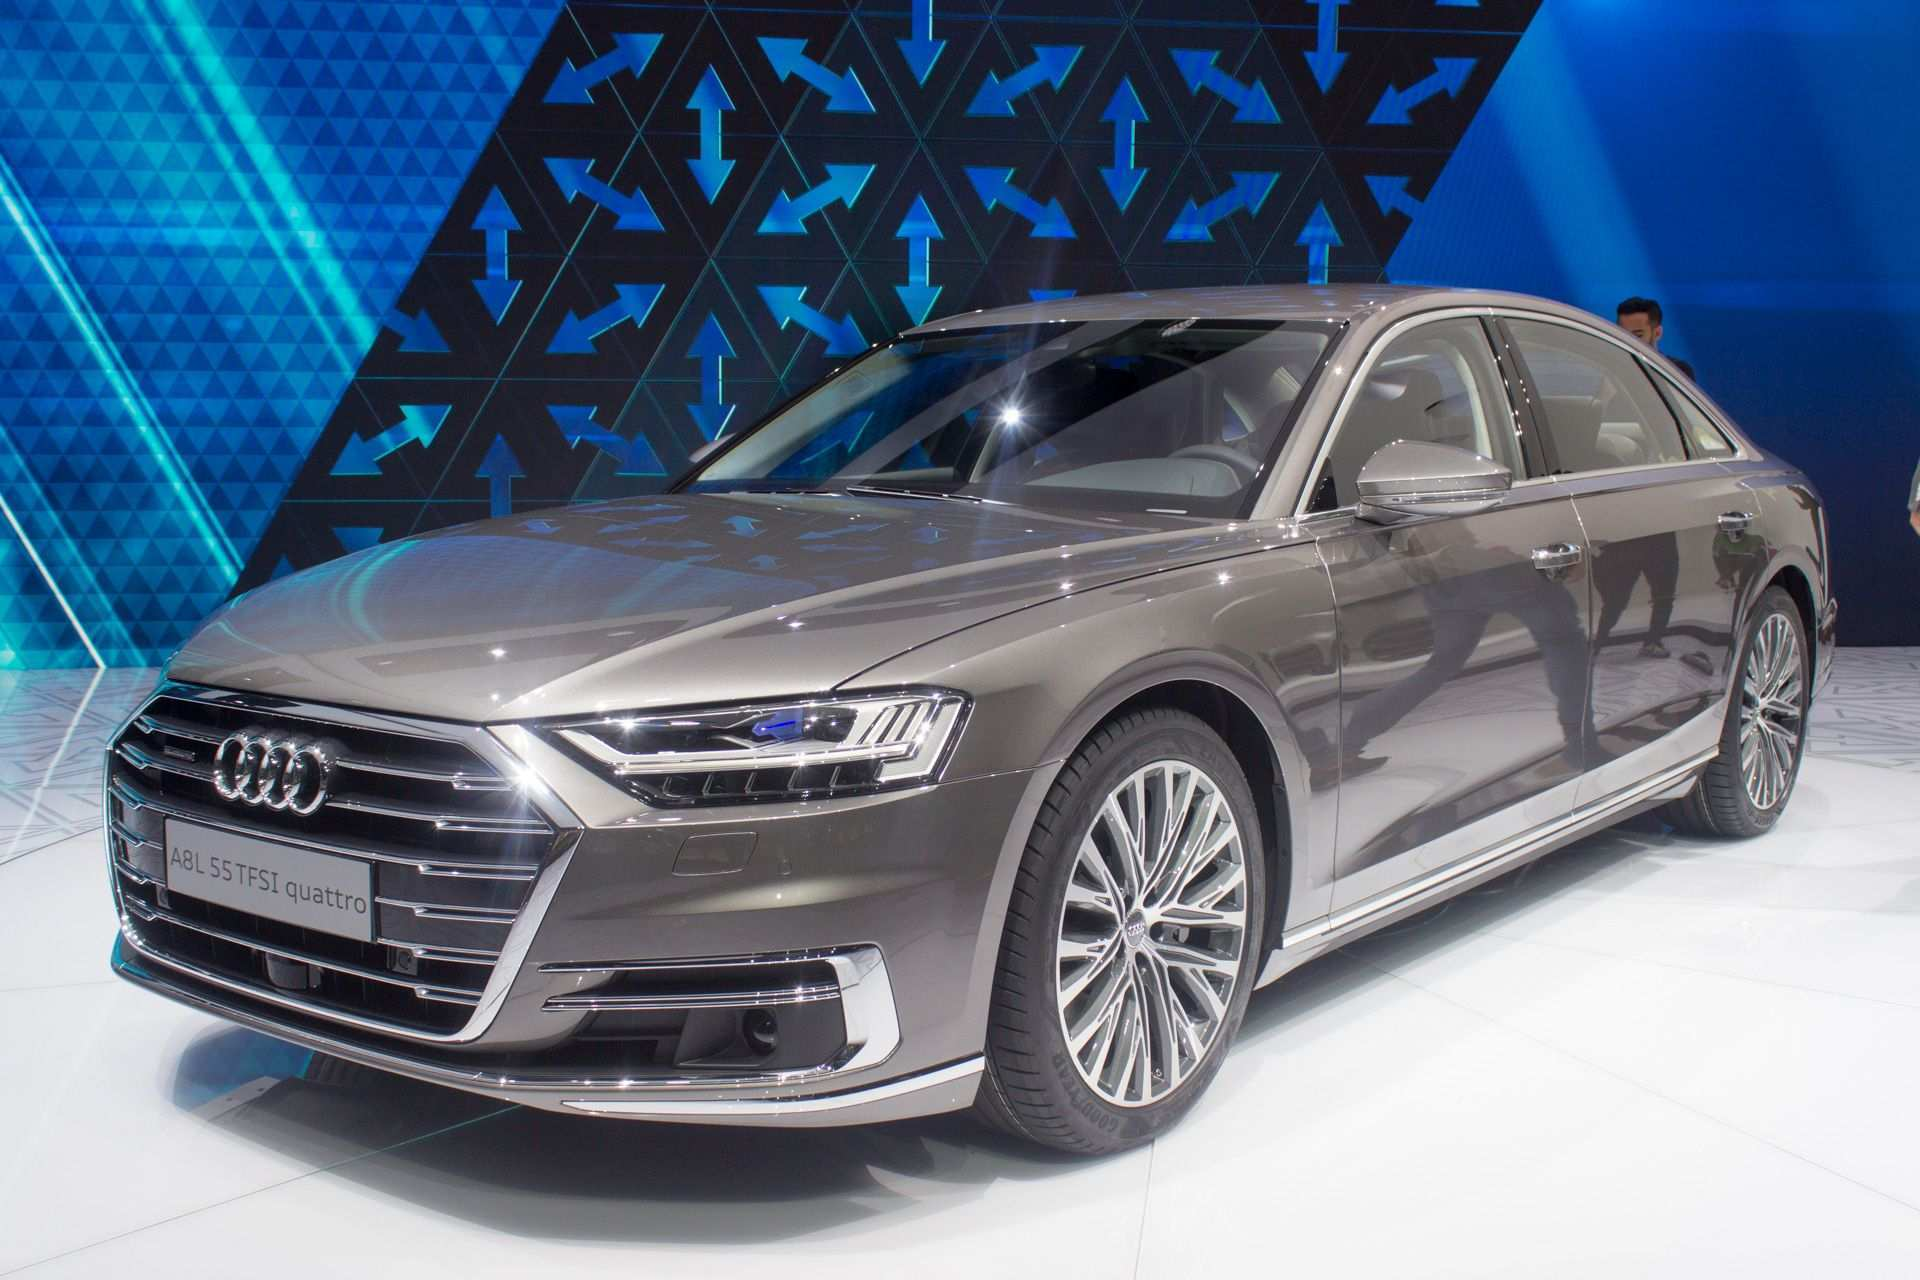 20 Gallery of 2020 Audi A8 L In Usa Exterior and Interior with 2020 Audi A8 L In Usa